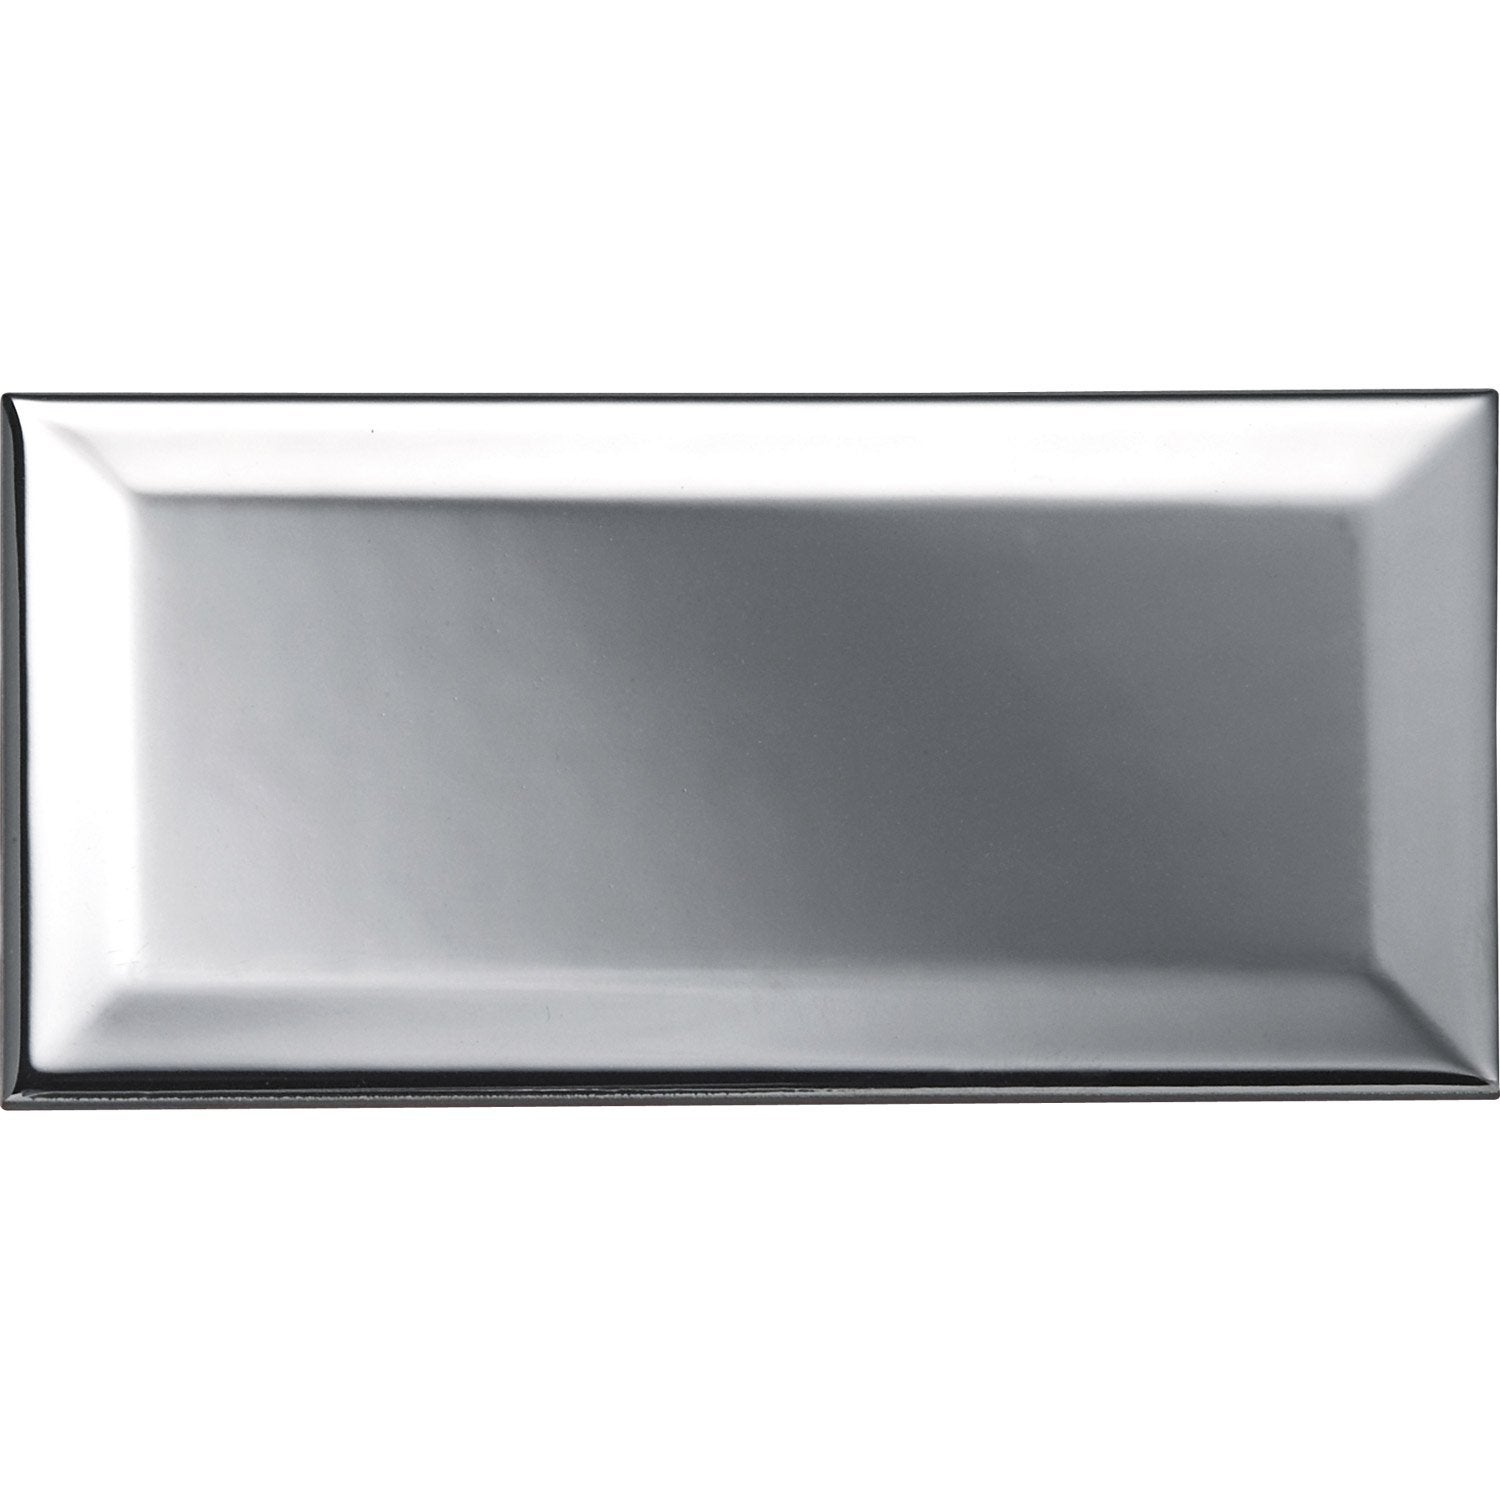 Carreau m tro argent l 7 5 x cm leroy merlin for Carrelage metro leroy merlin